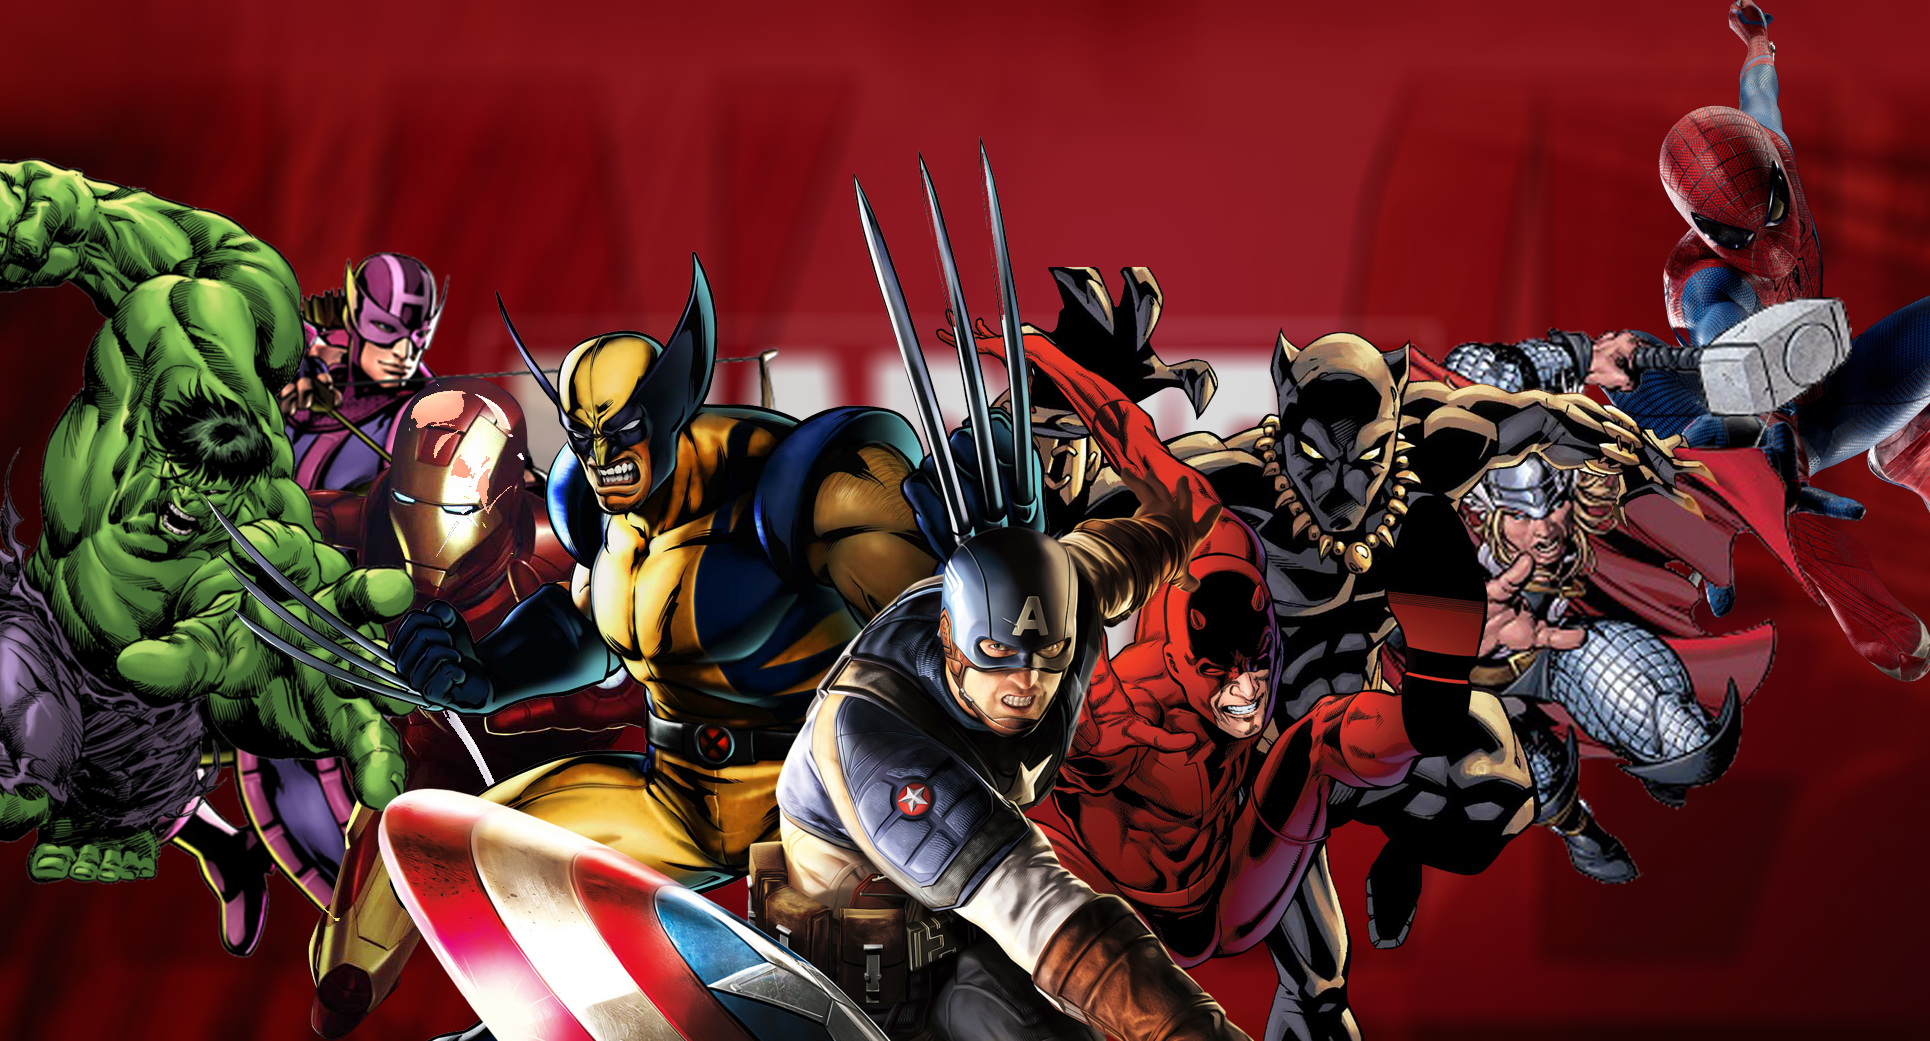 Marvel Characters Wallpaper Design By Axiom-Apps On DeviantArt